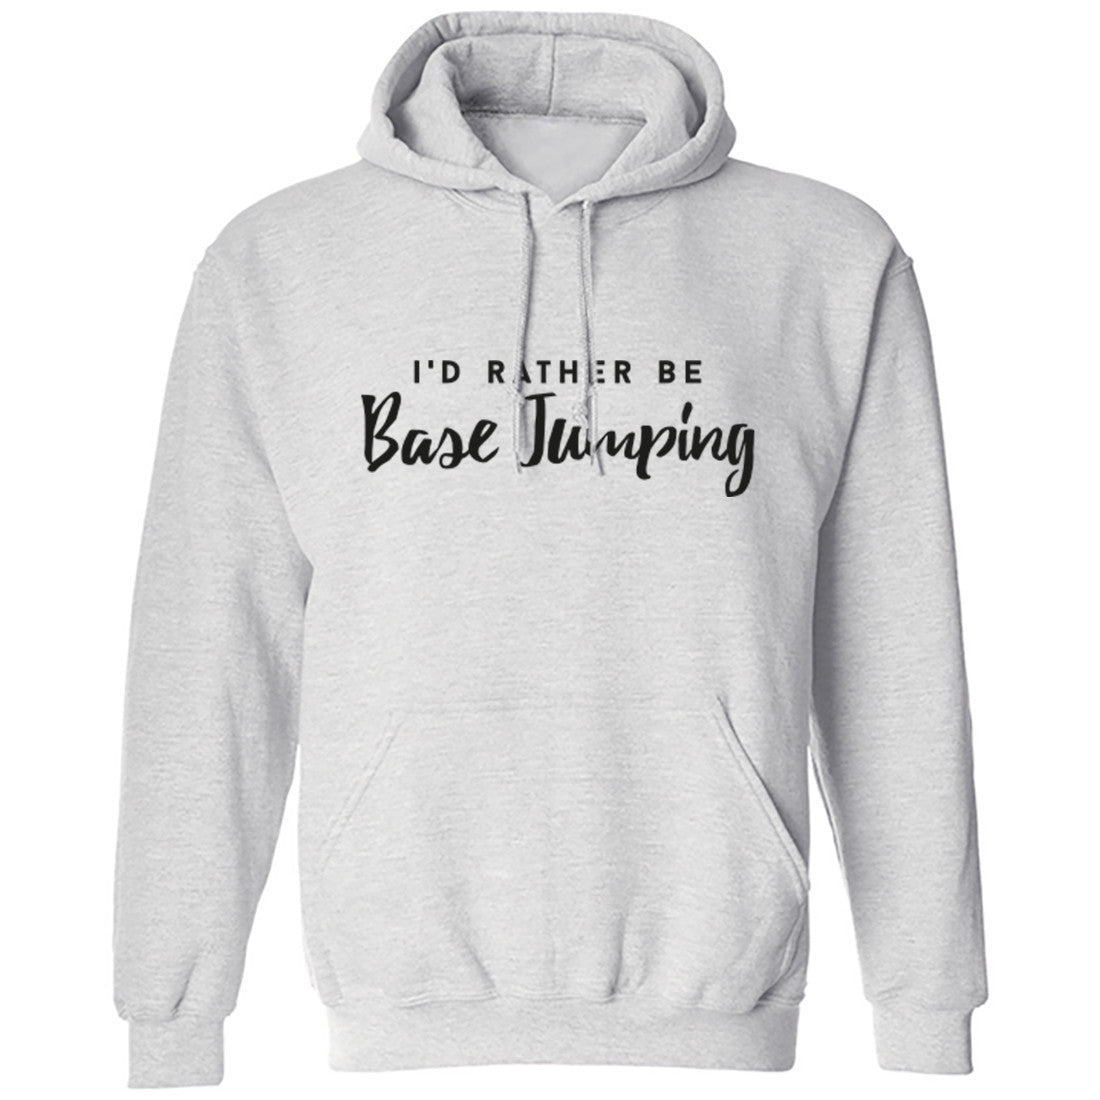 I'd Rather Be Base Jumping Unisex Hoodie K0205 - Illustrated Identity Ltd.